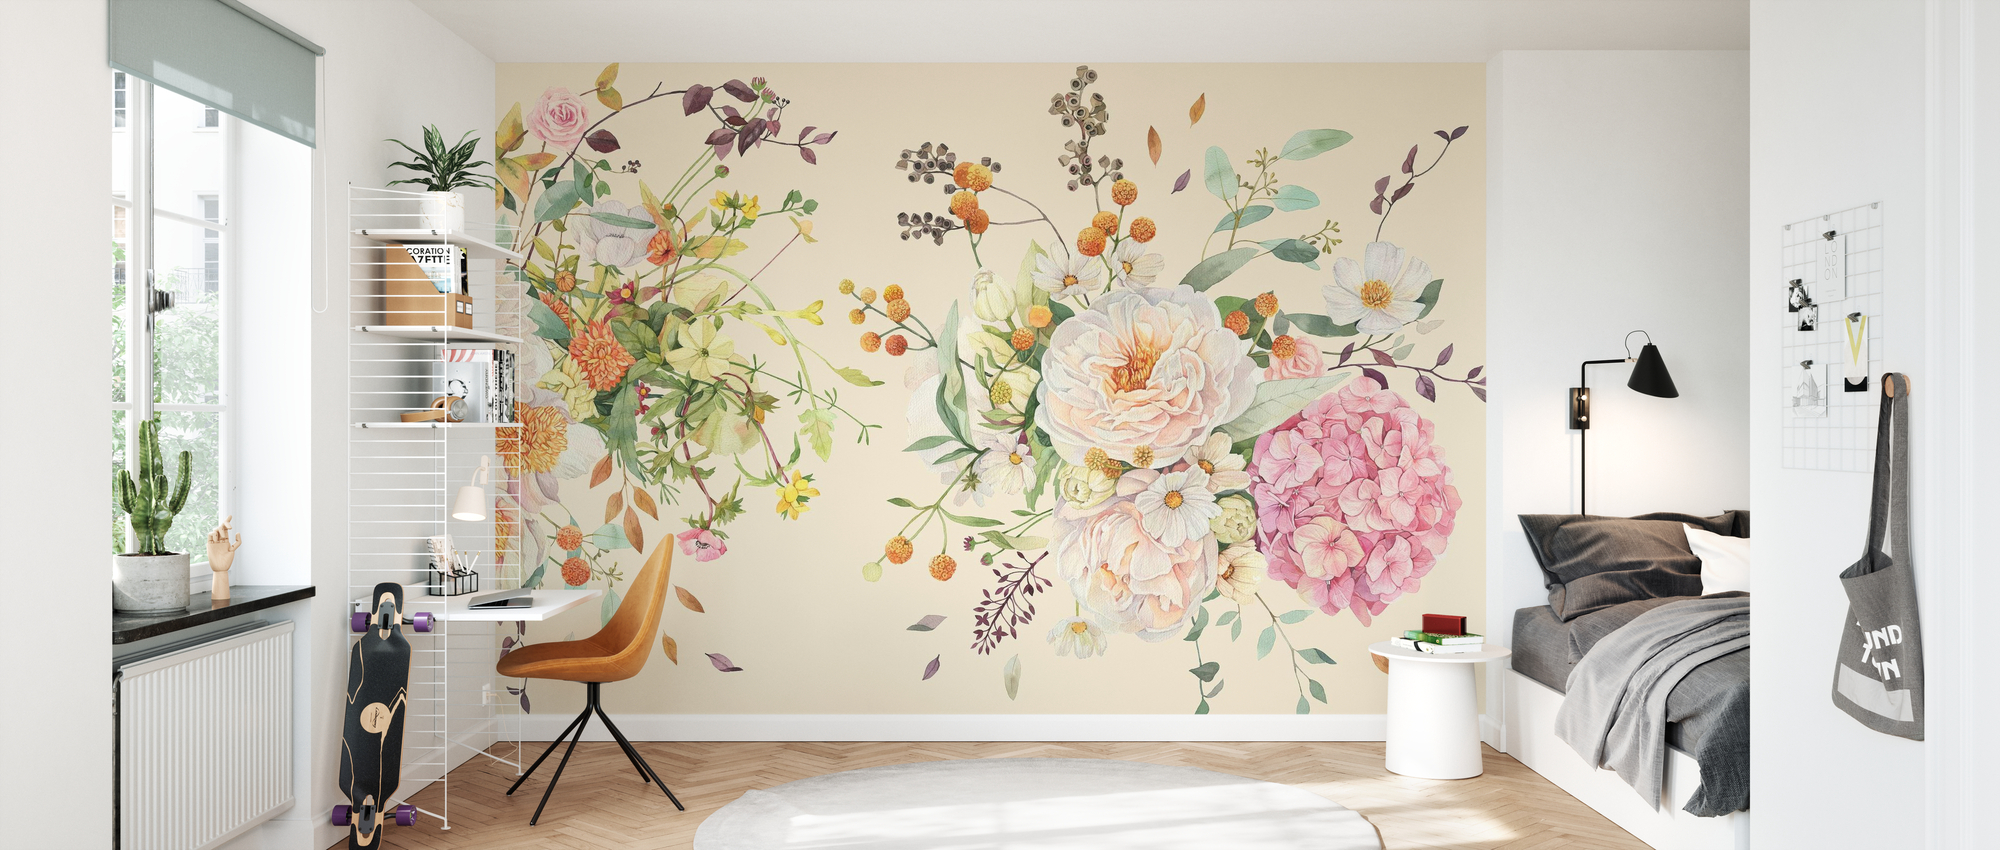 Large Pearl Vase Wall Stickers Flower Mural Porch Wallpaper Wall Room decoration